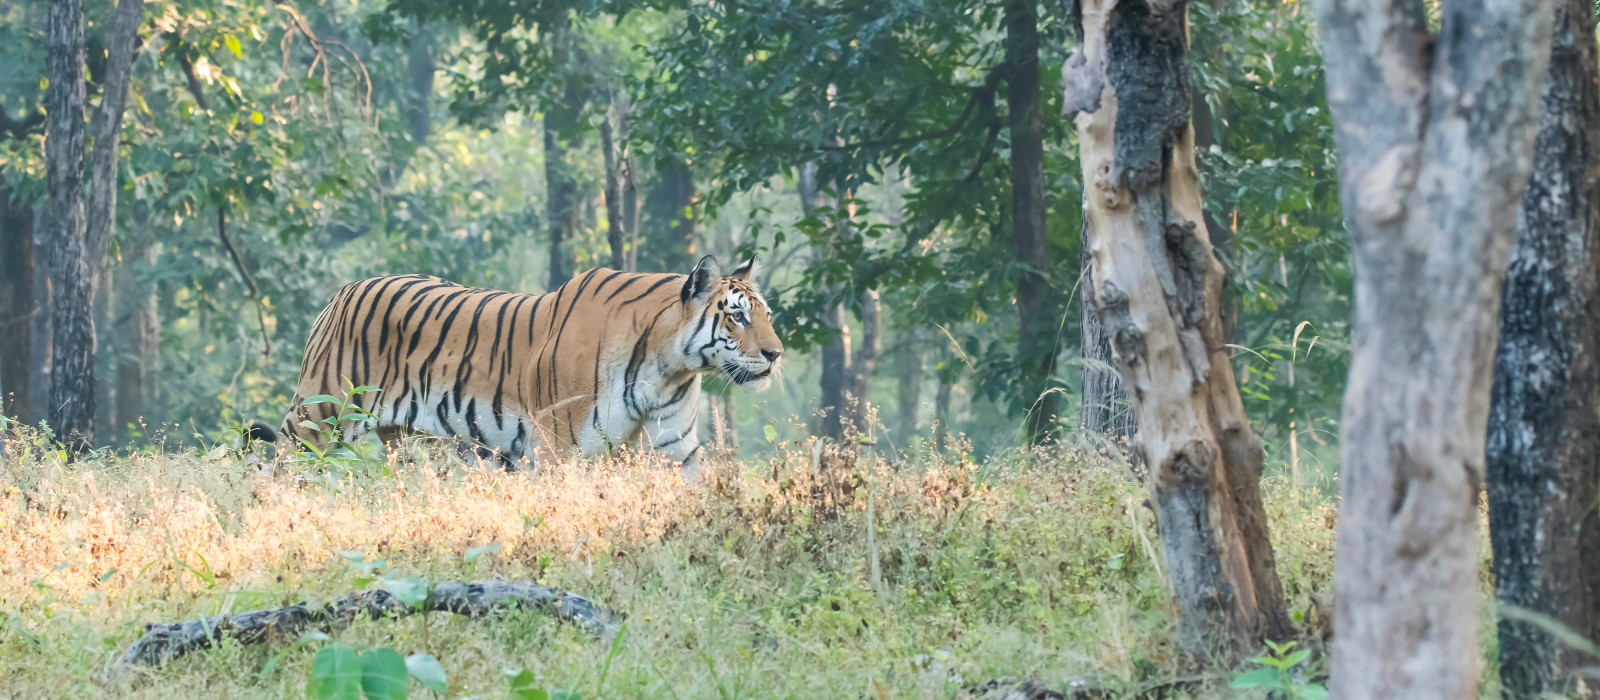 Wildlife Safari in Central India Tour Trip 1